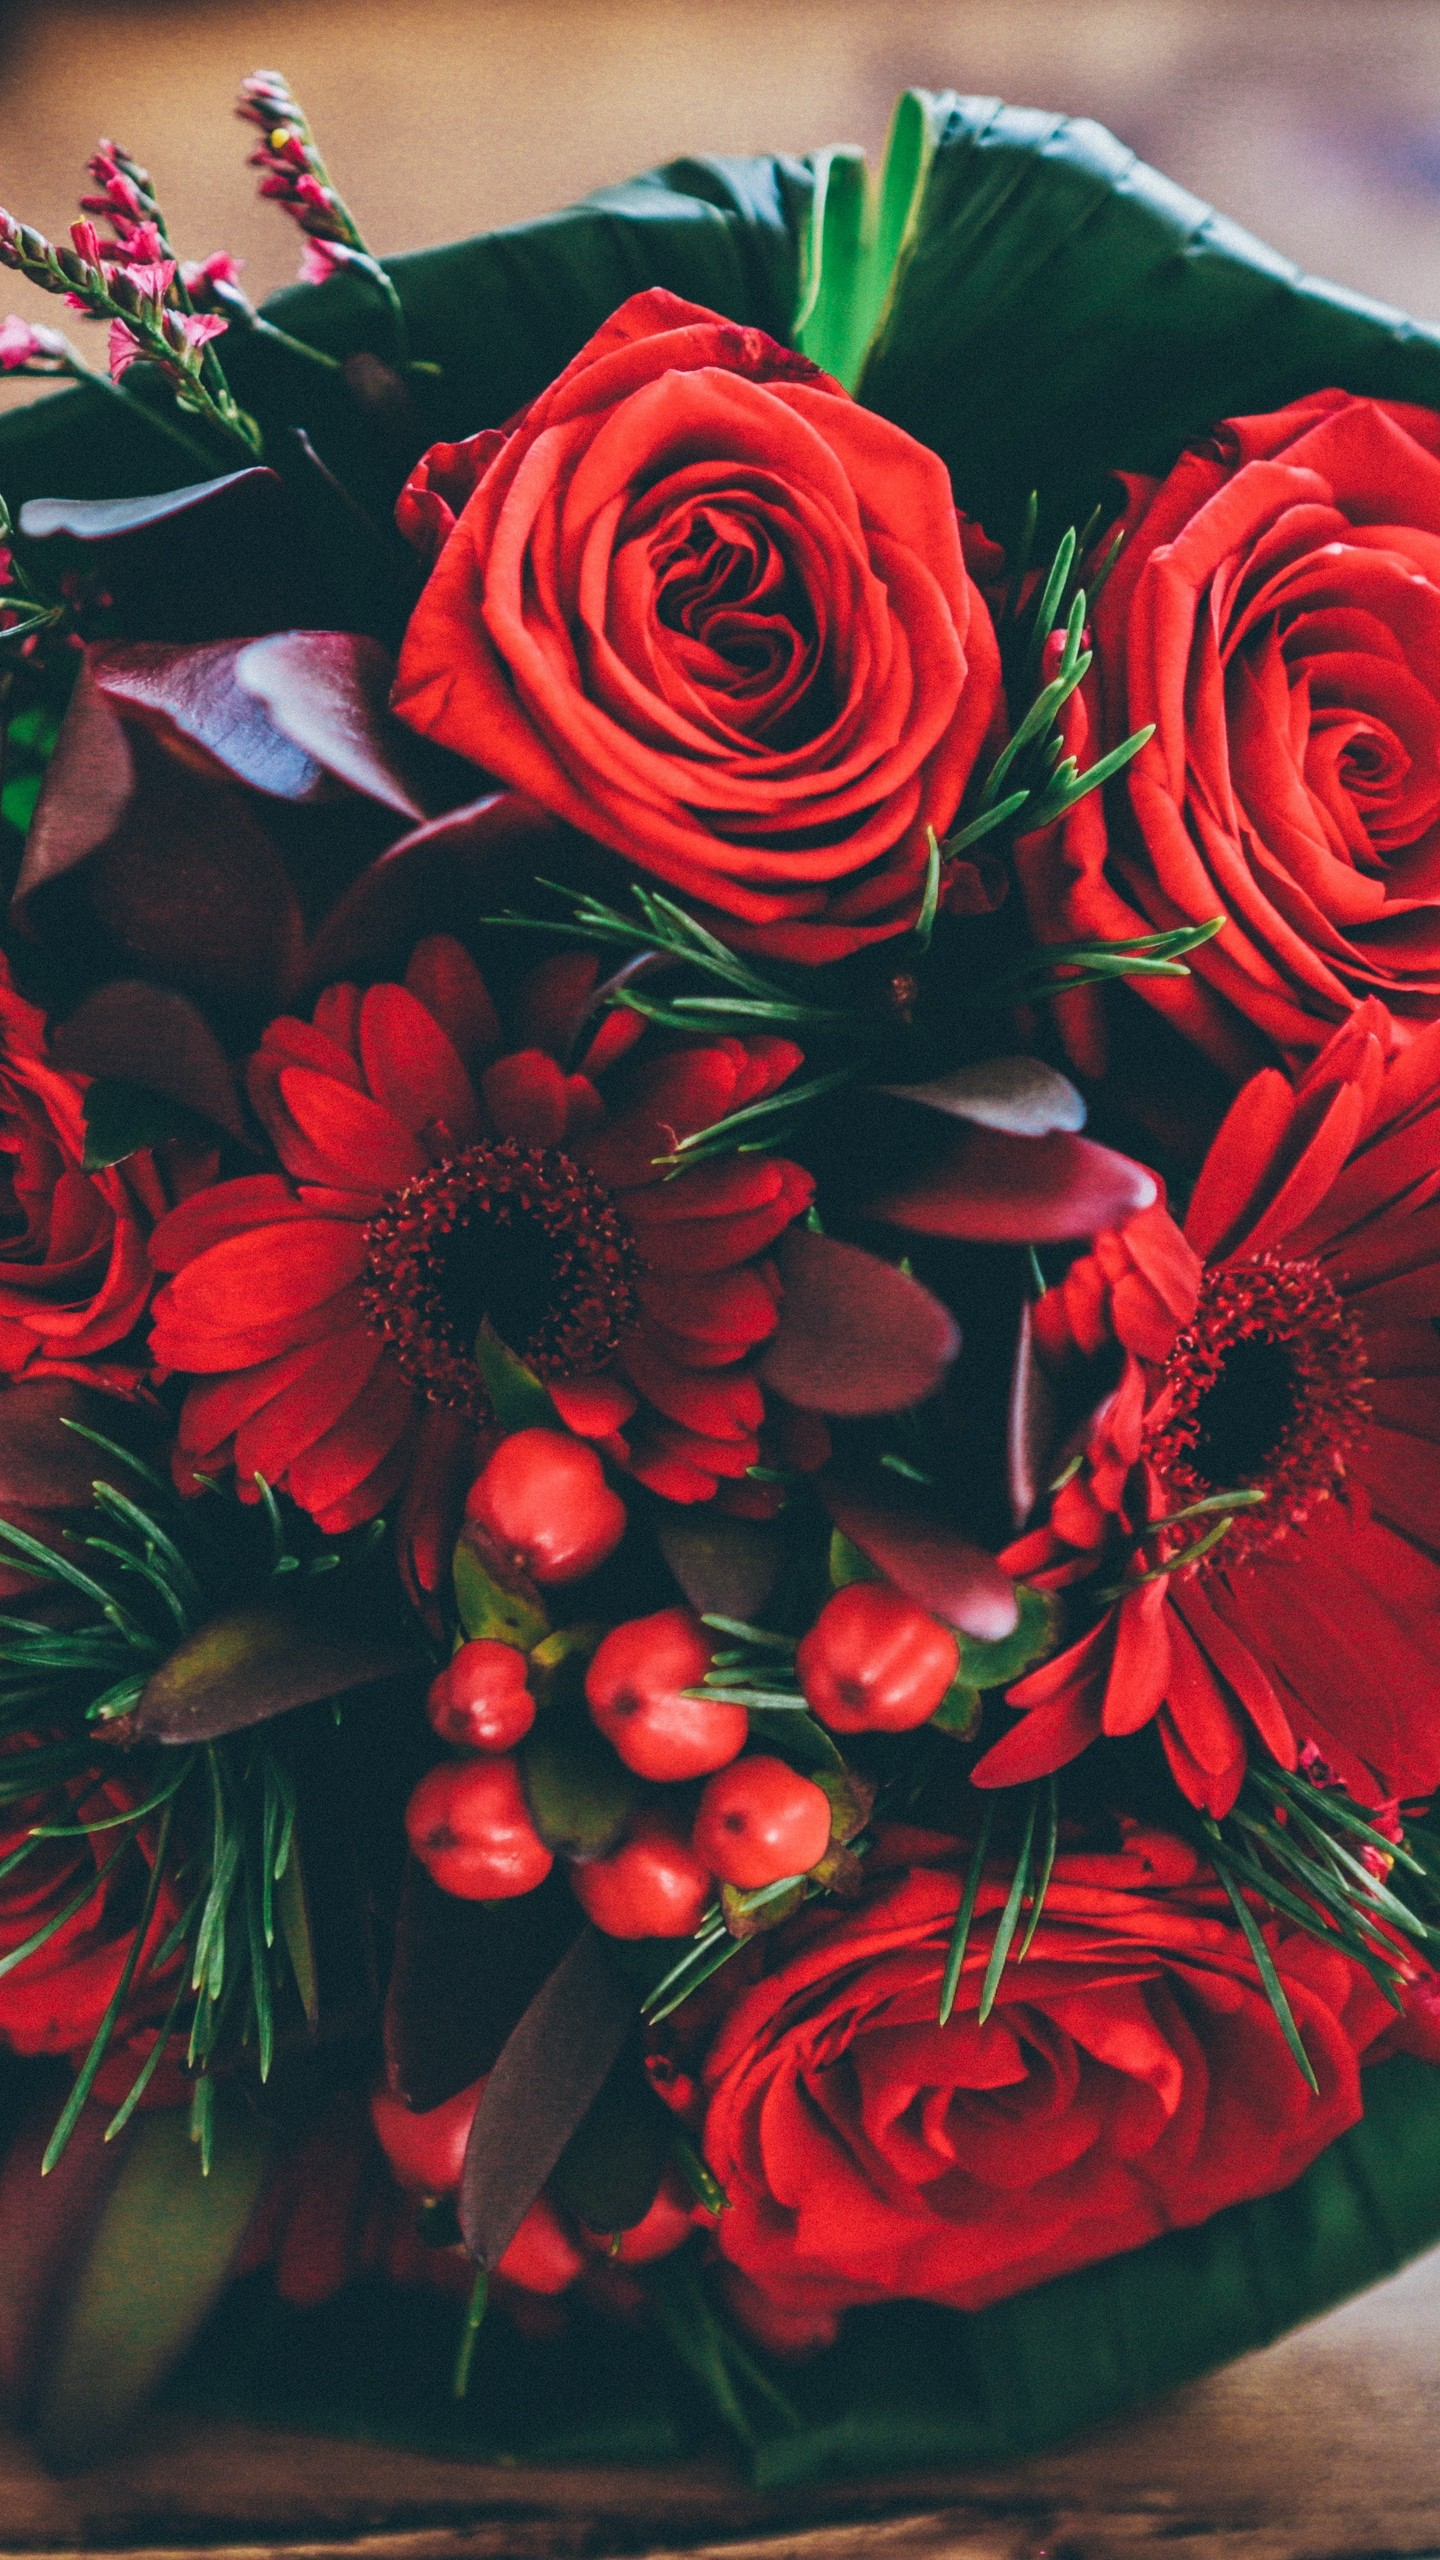 170 Rose Flower Wallpapers Hd For Iphones And Android   Flower 1440x2560